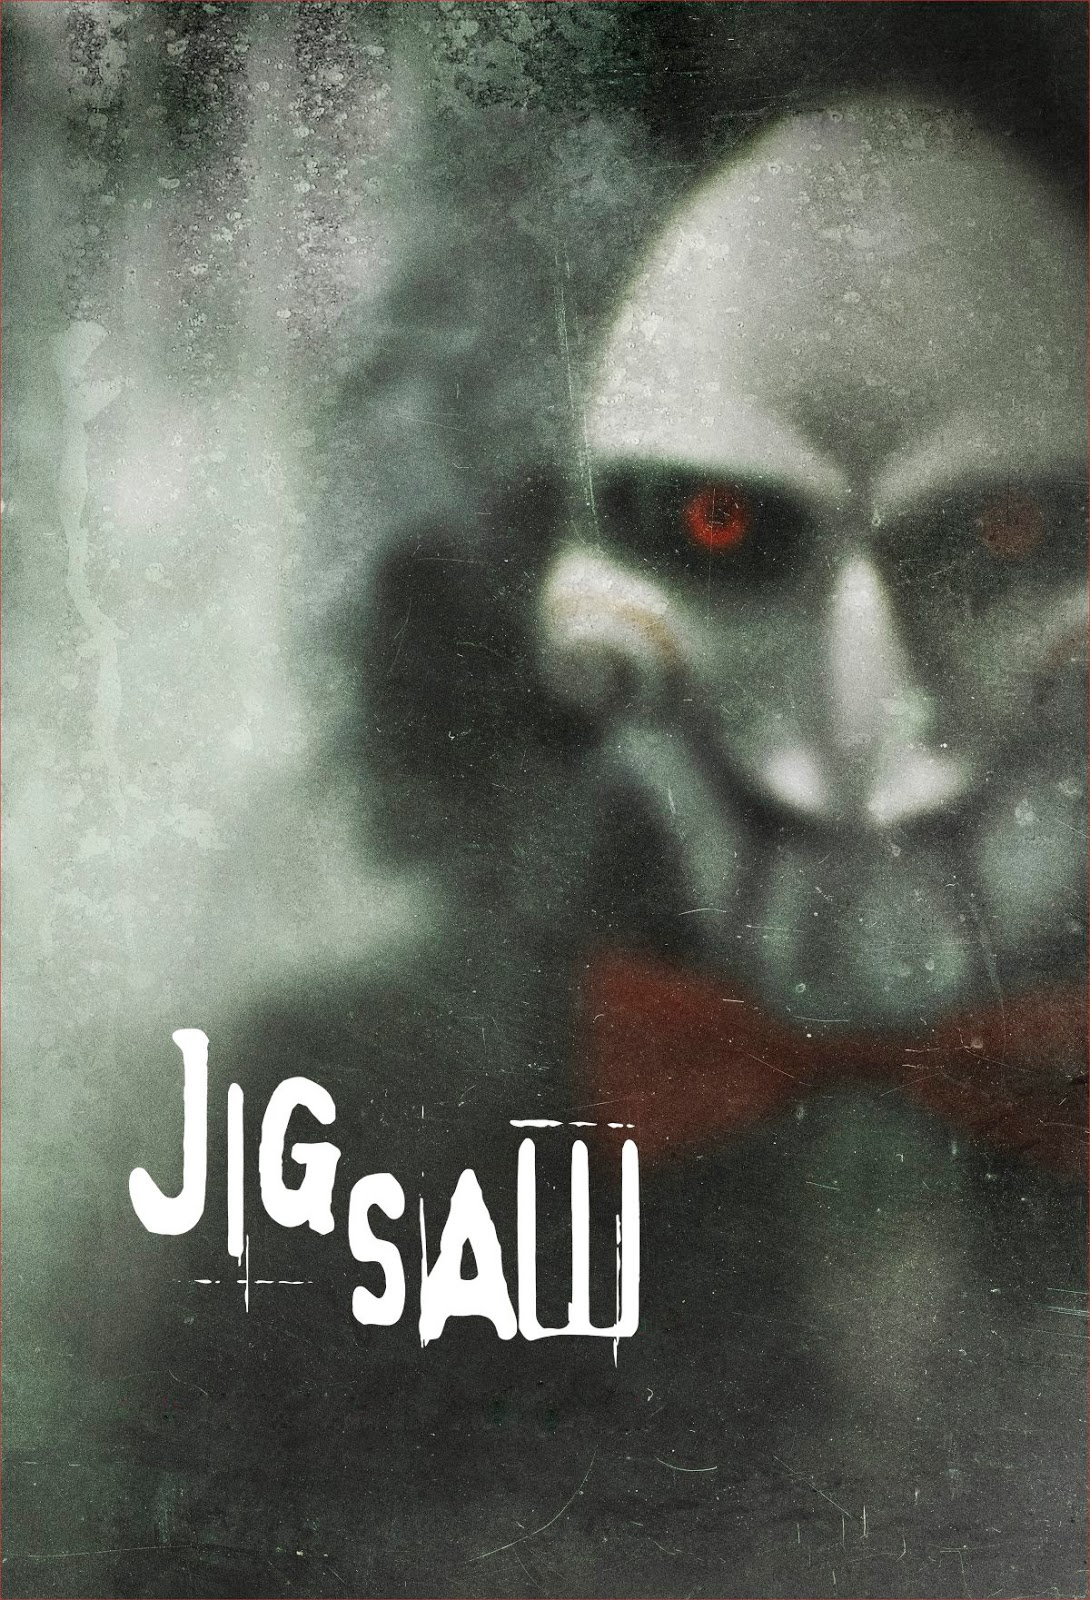 Jigsaw [2017] [DVDR] [NTSC] [CUSTOM HD] [Latino 5.1]